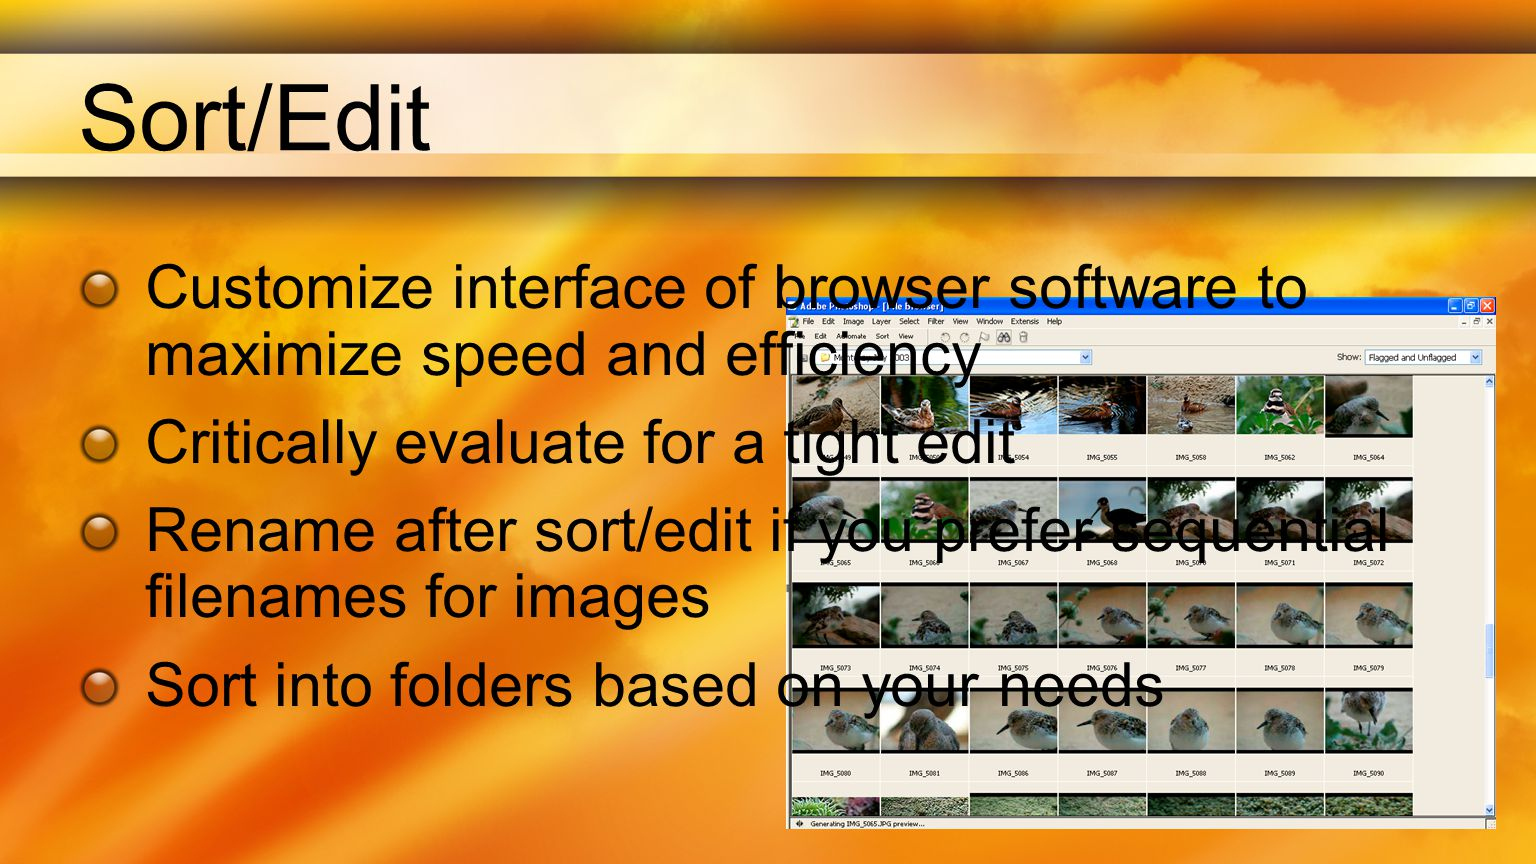 Sort/Edit Customize interface of browser software to maximize speed and efficiency Critically evaluate for a tight edit Rename after sort/edit if you